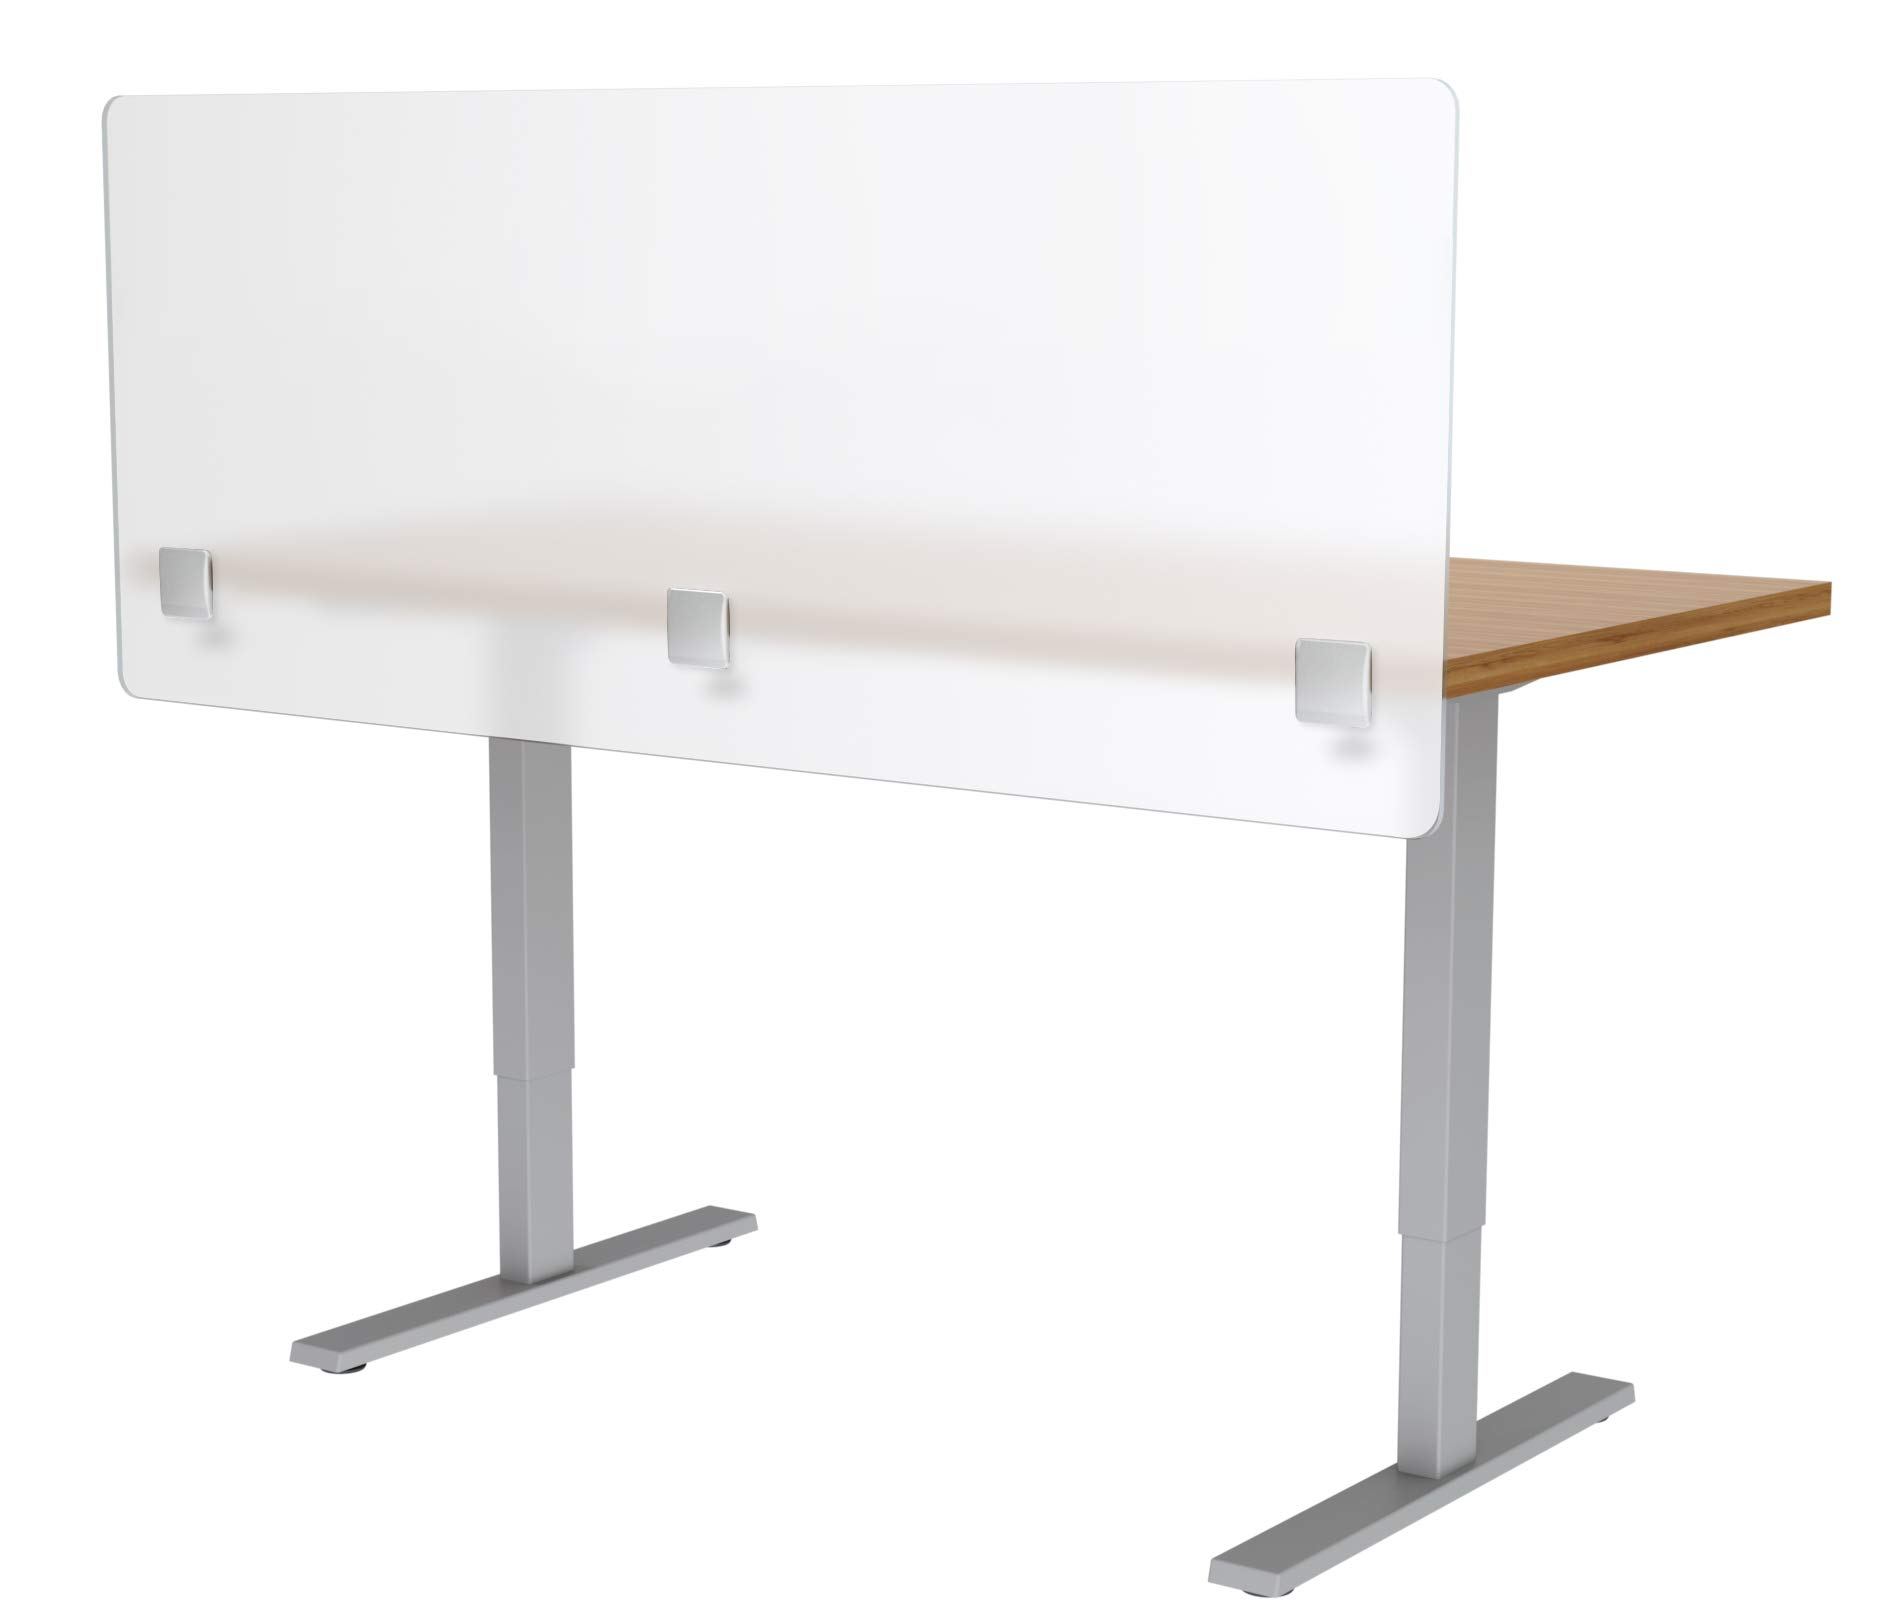 """VaRoom Privacy Partition, Frosted Acrylic Clamp-on Desk Divider – 60"""" W x 24""""H Privacy Desk Mounted Cubicle Panel"""